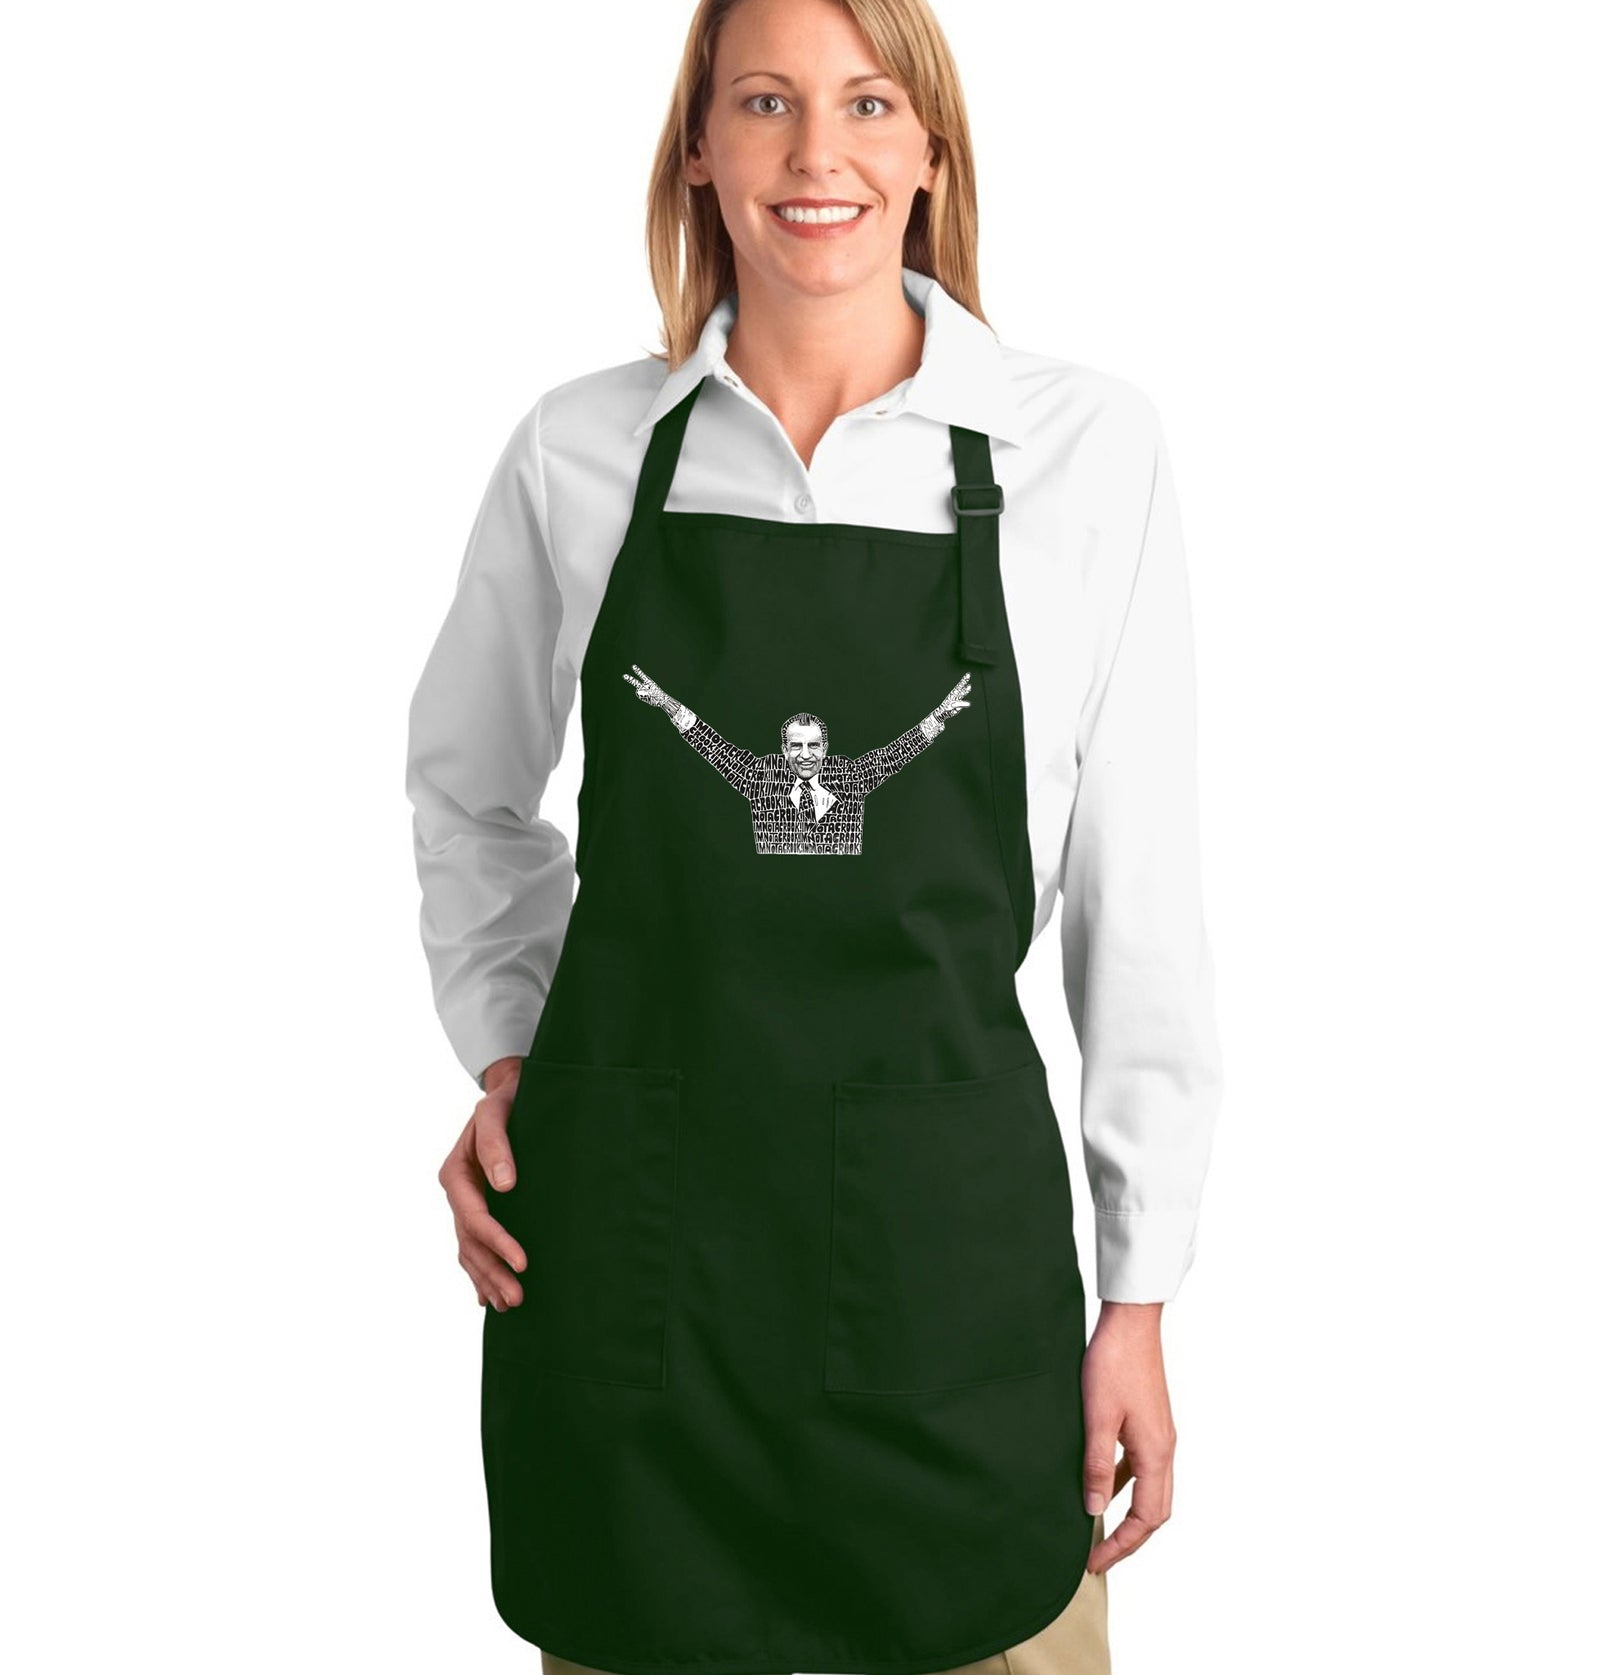 Full Length Apron - I'M NOT A CROOK